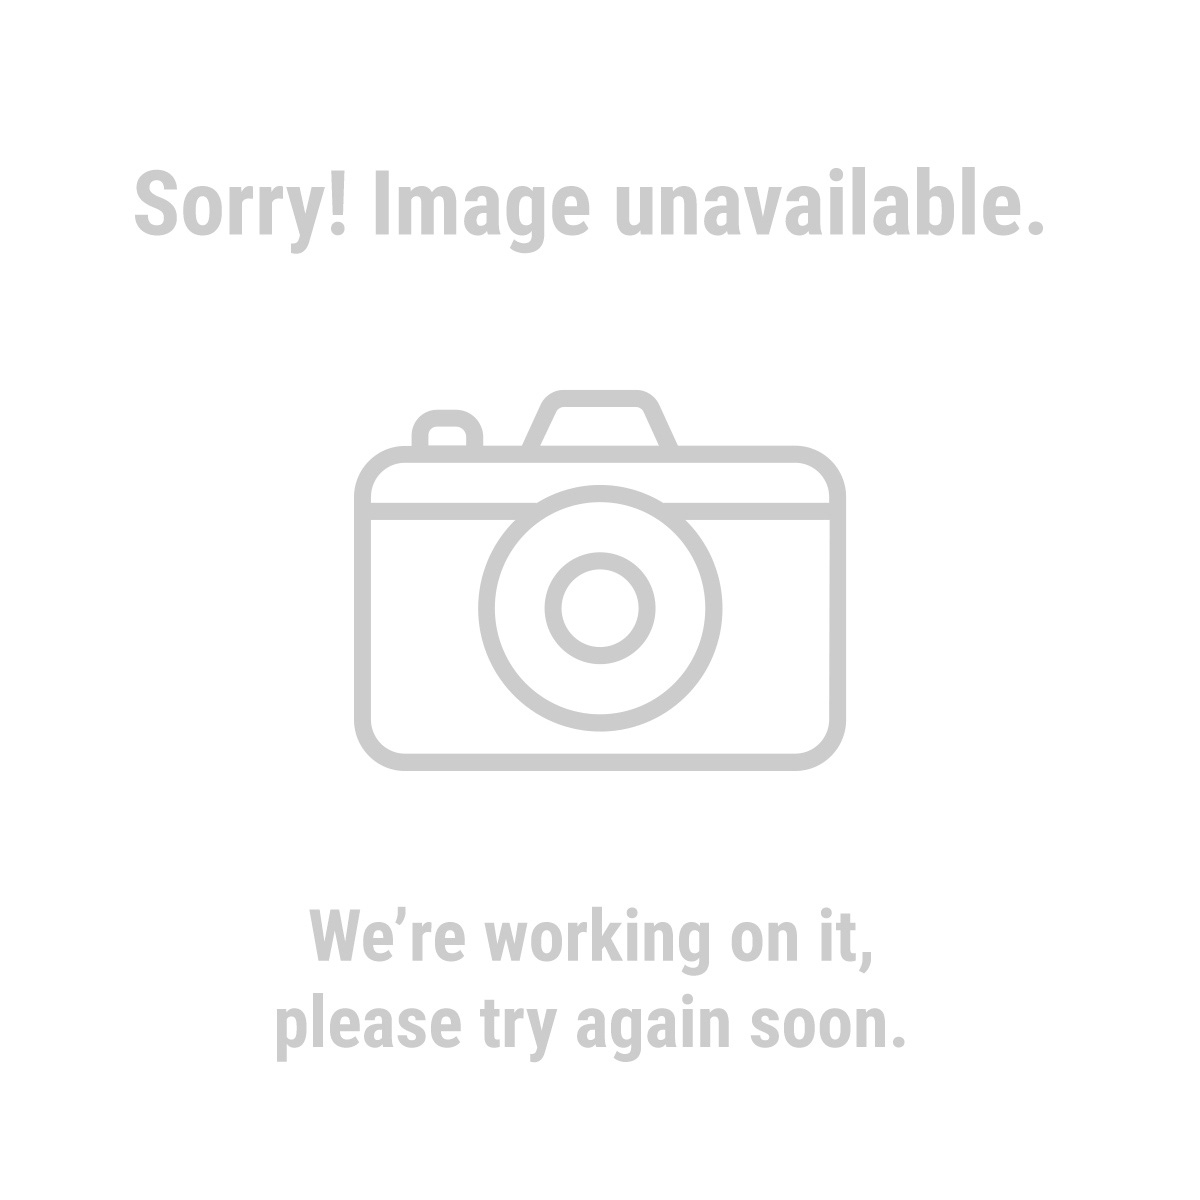 HFT® 60272 100 Ft. x 12 Gauge Outdoor Extension Cord